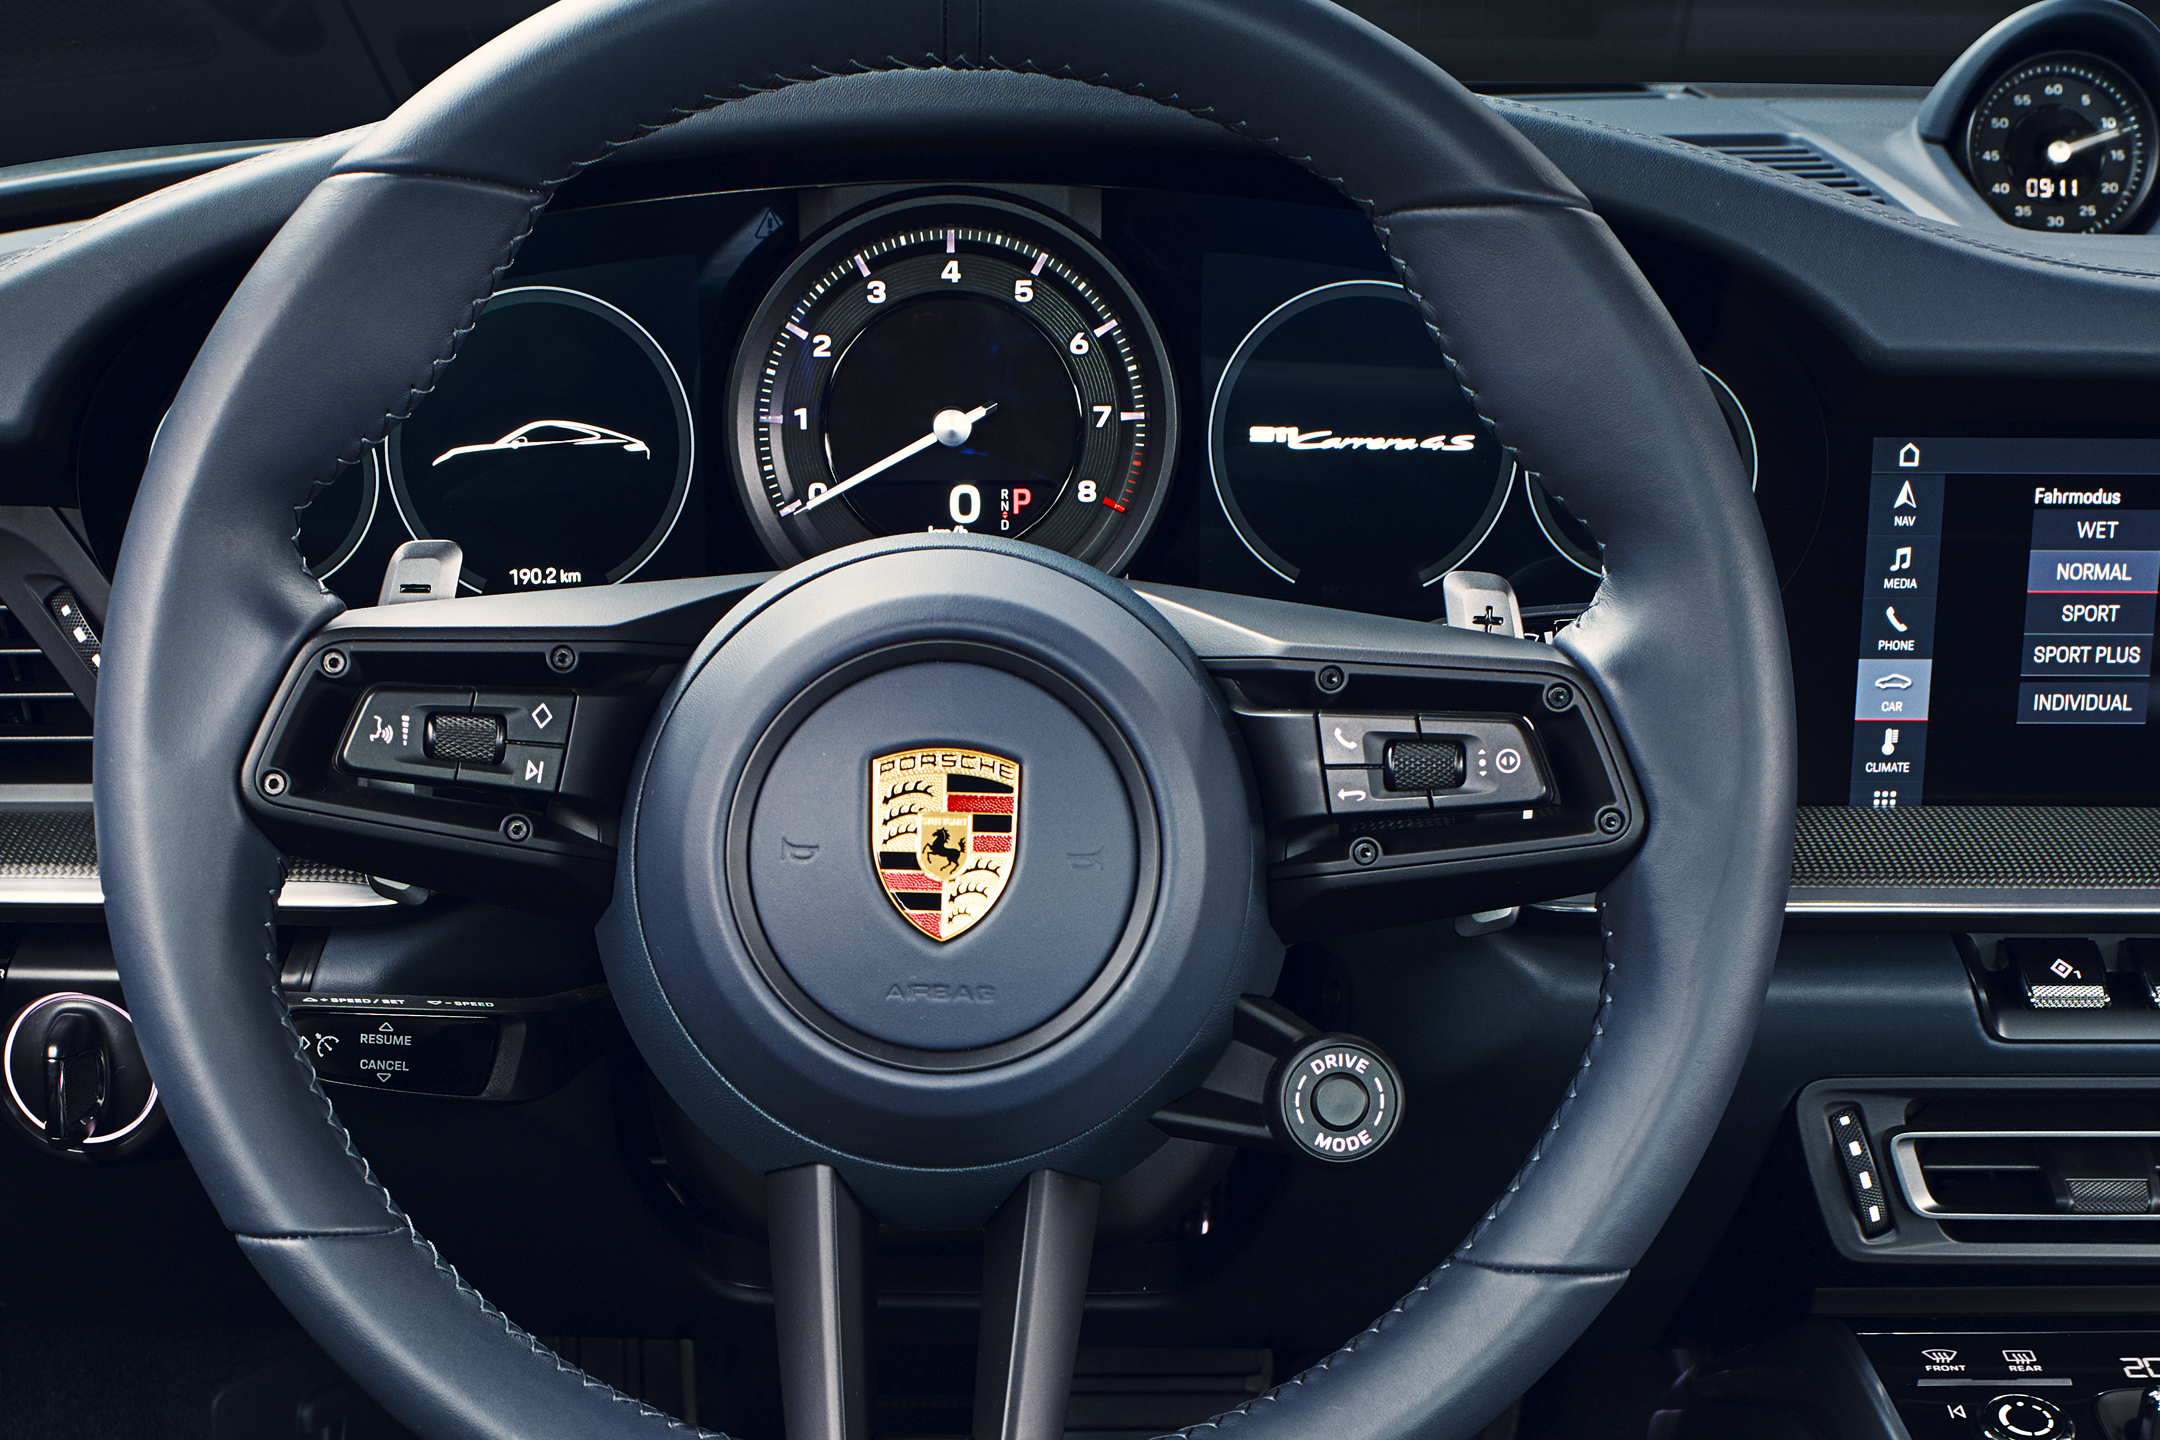 Porsche 911 type 992 Carrera 4S - 2018 - steering wheel / volant